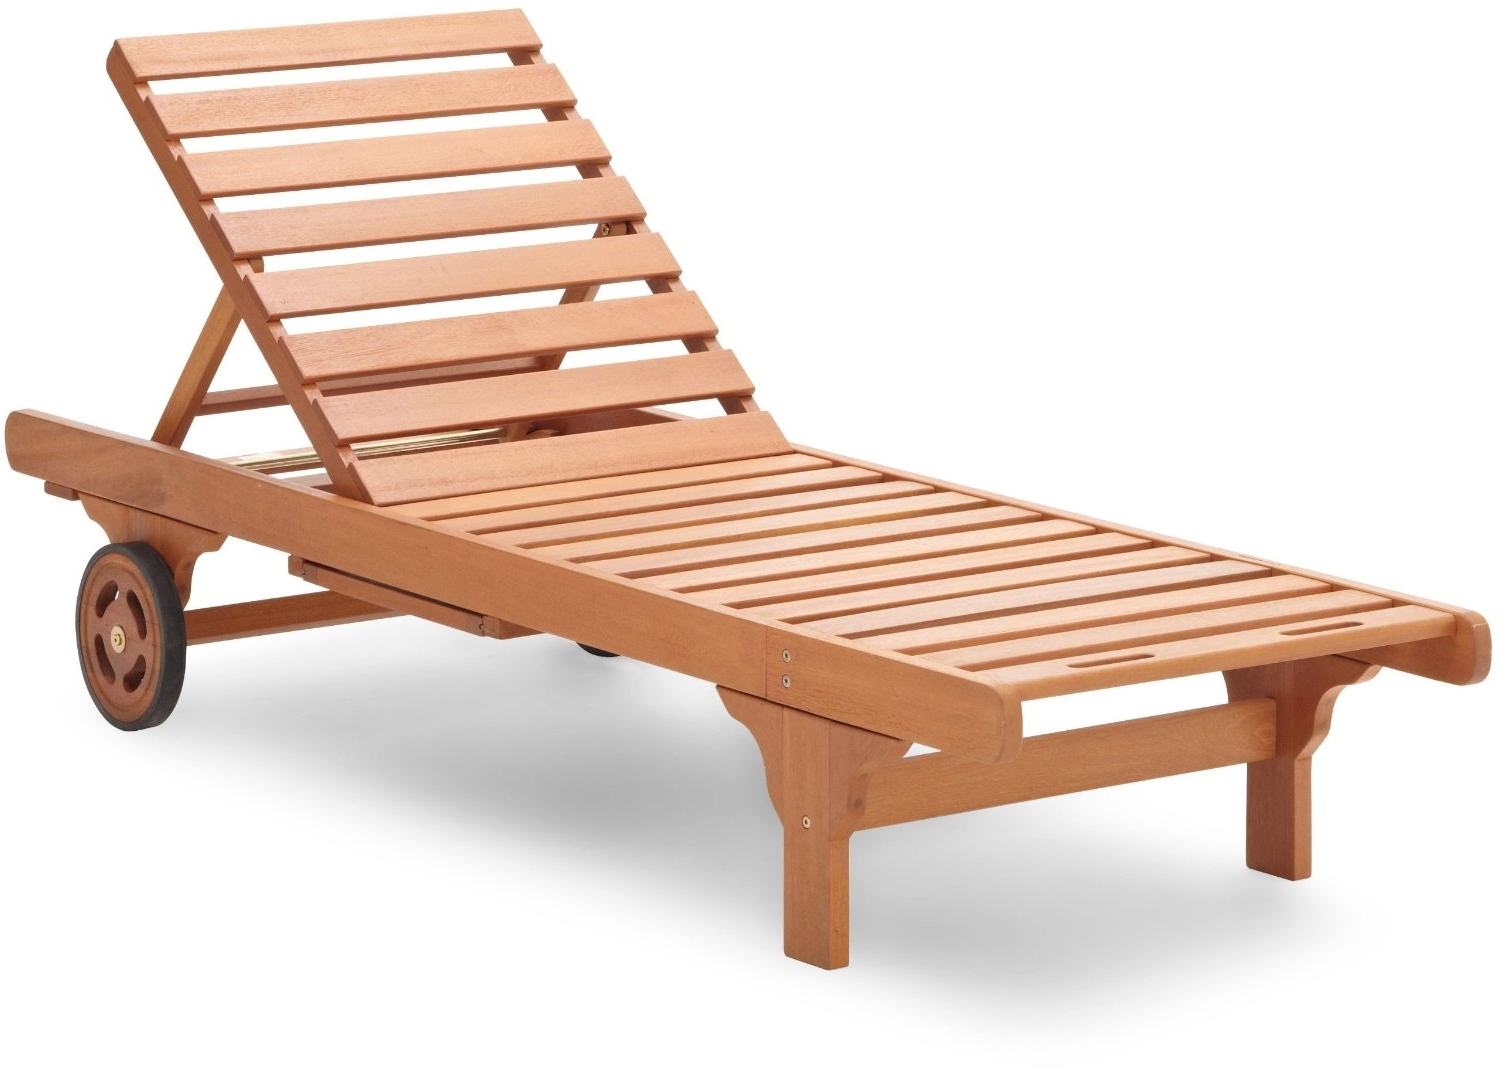 Wood Outdoor Chaise Lounge Chairs : Best Outdoor Chaise Lounge Regarding Favorite Wooden Outdoor Chaise Lounge Chairs (View 12 of 15)